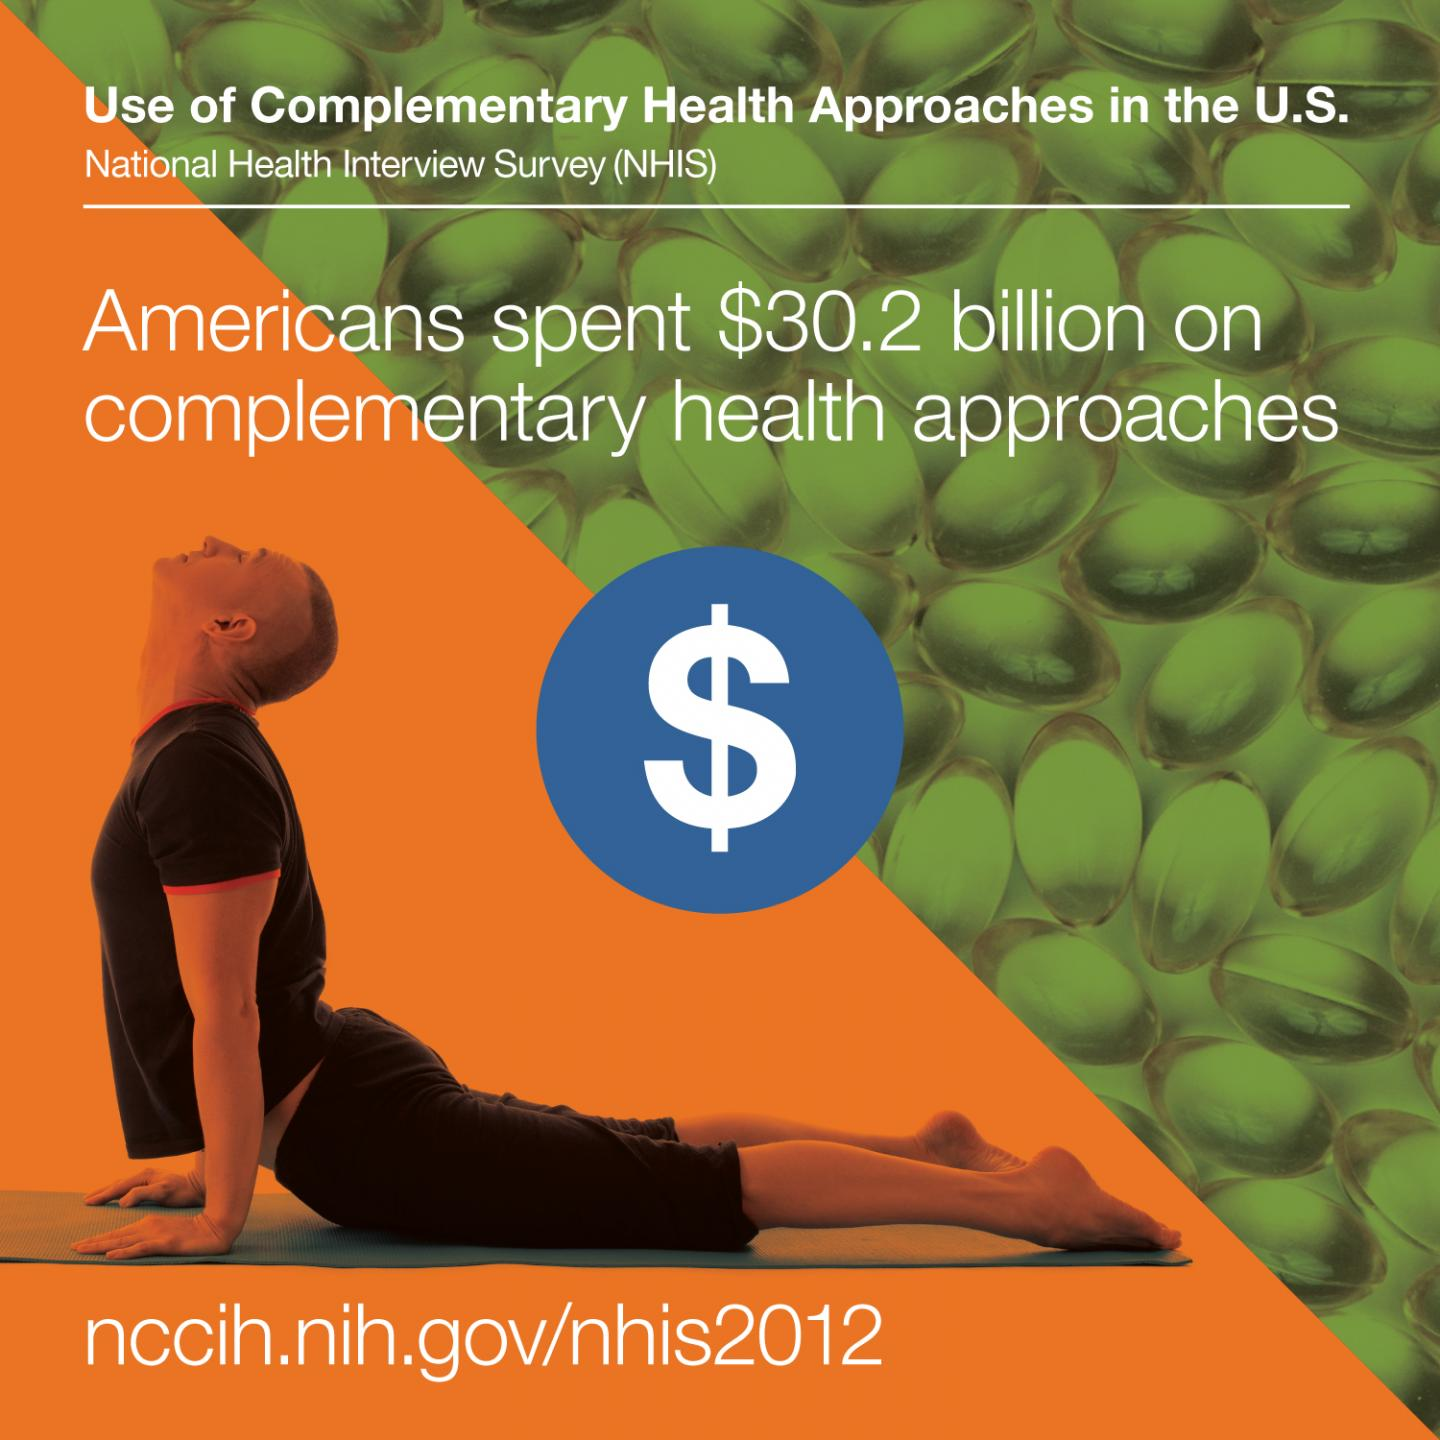 Americans Spent $30.2 Billion Out-of-Pocket on Complementary Health Approaches